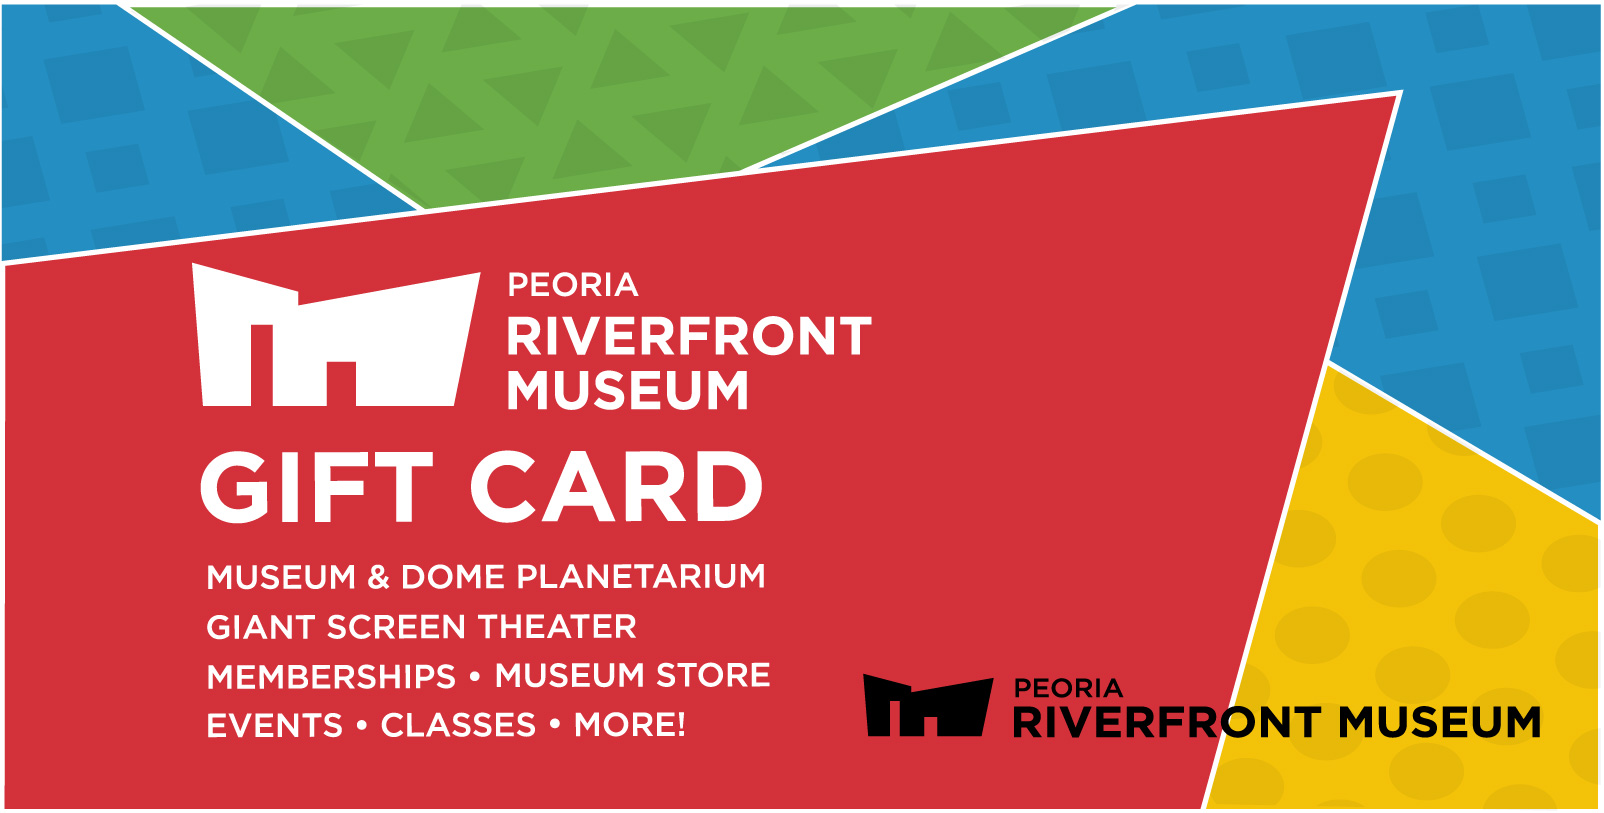 Plan your visit museum gift cards peoria riverfront museum museum gift cards 1betcityfo Gallery